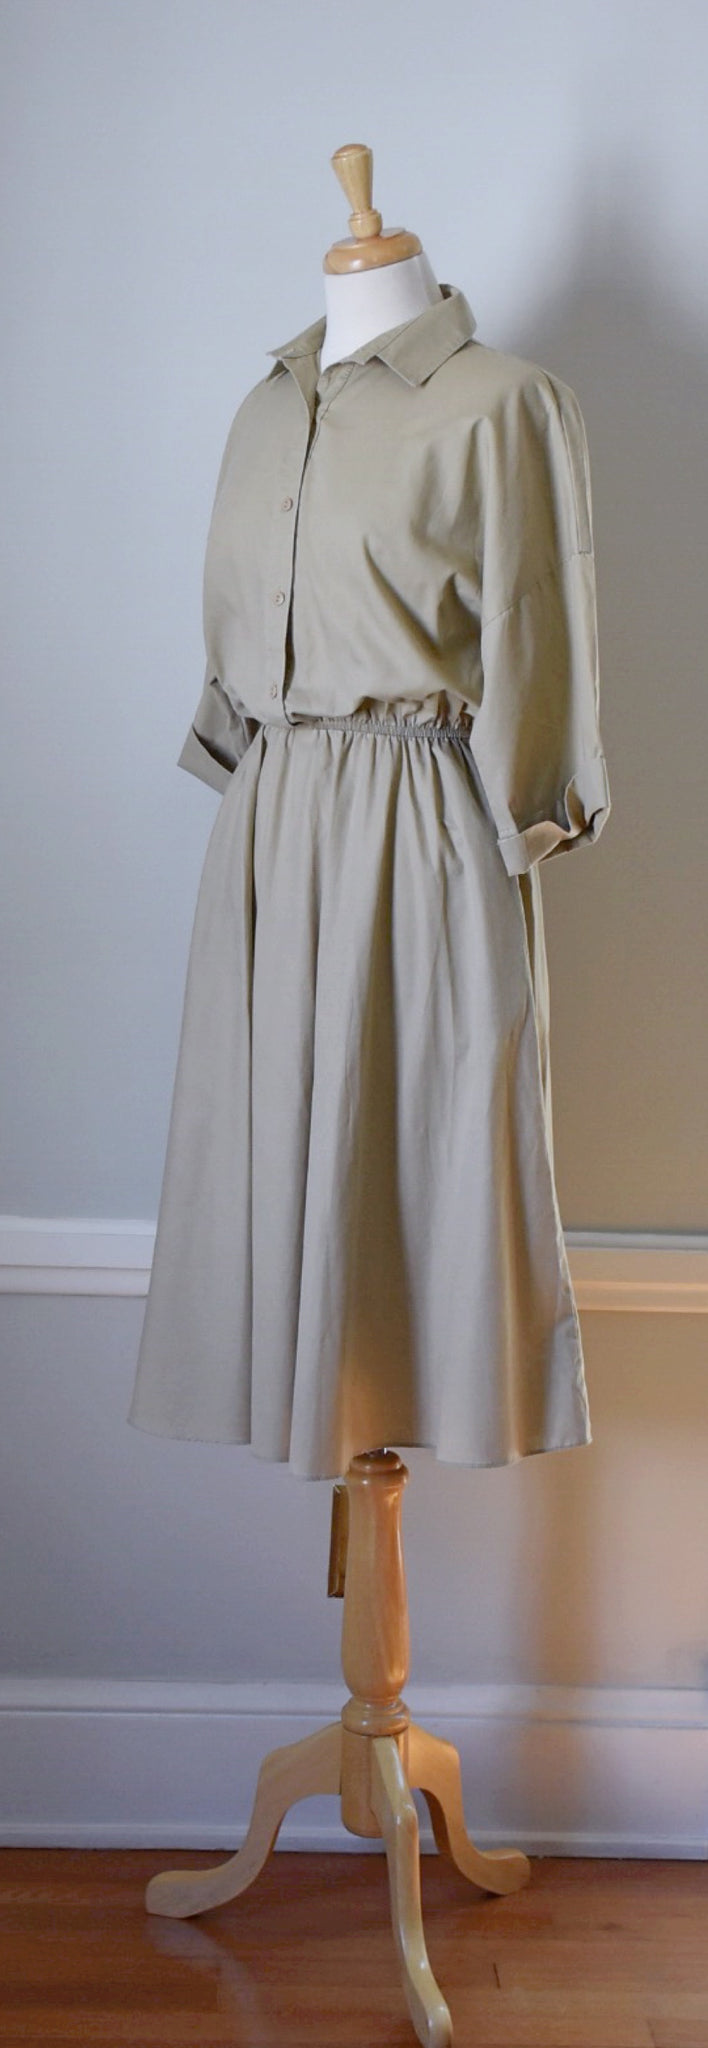 50s Shirtwaist Day Dress